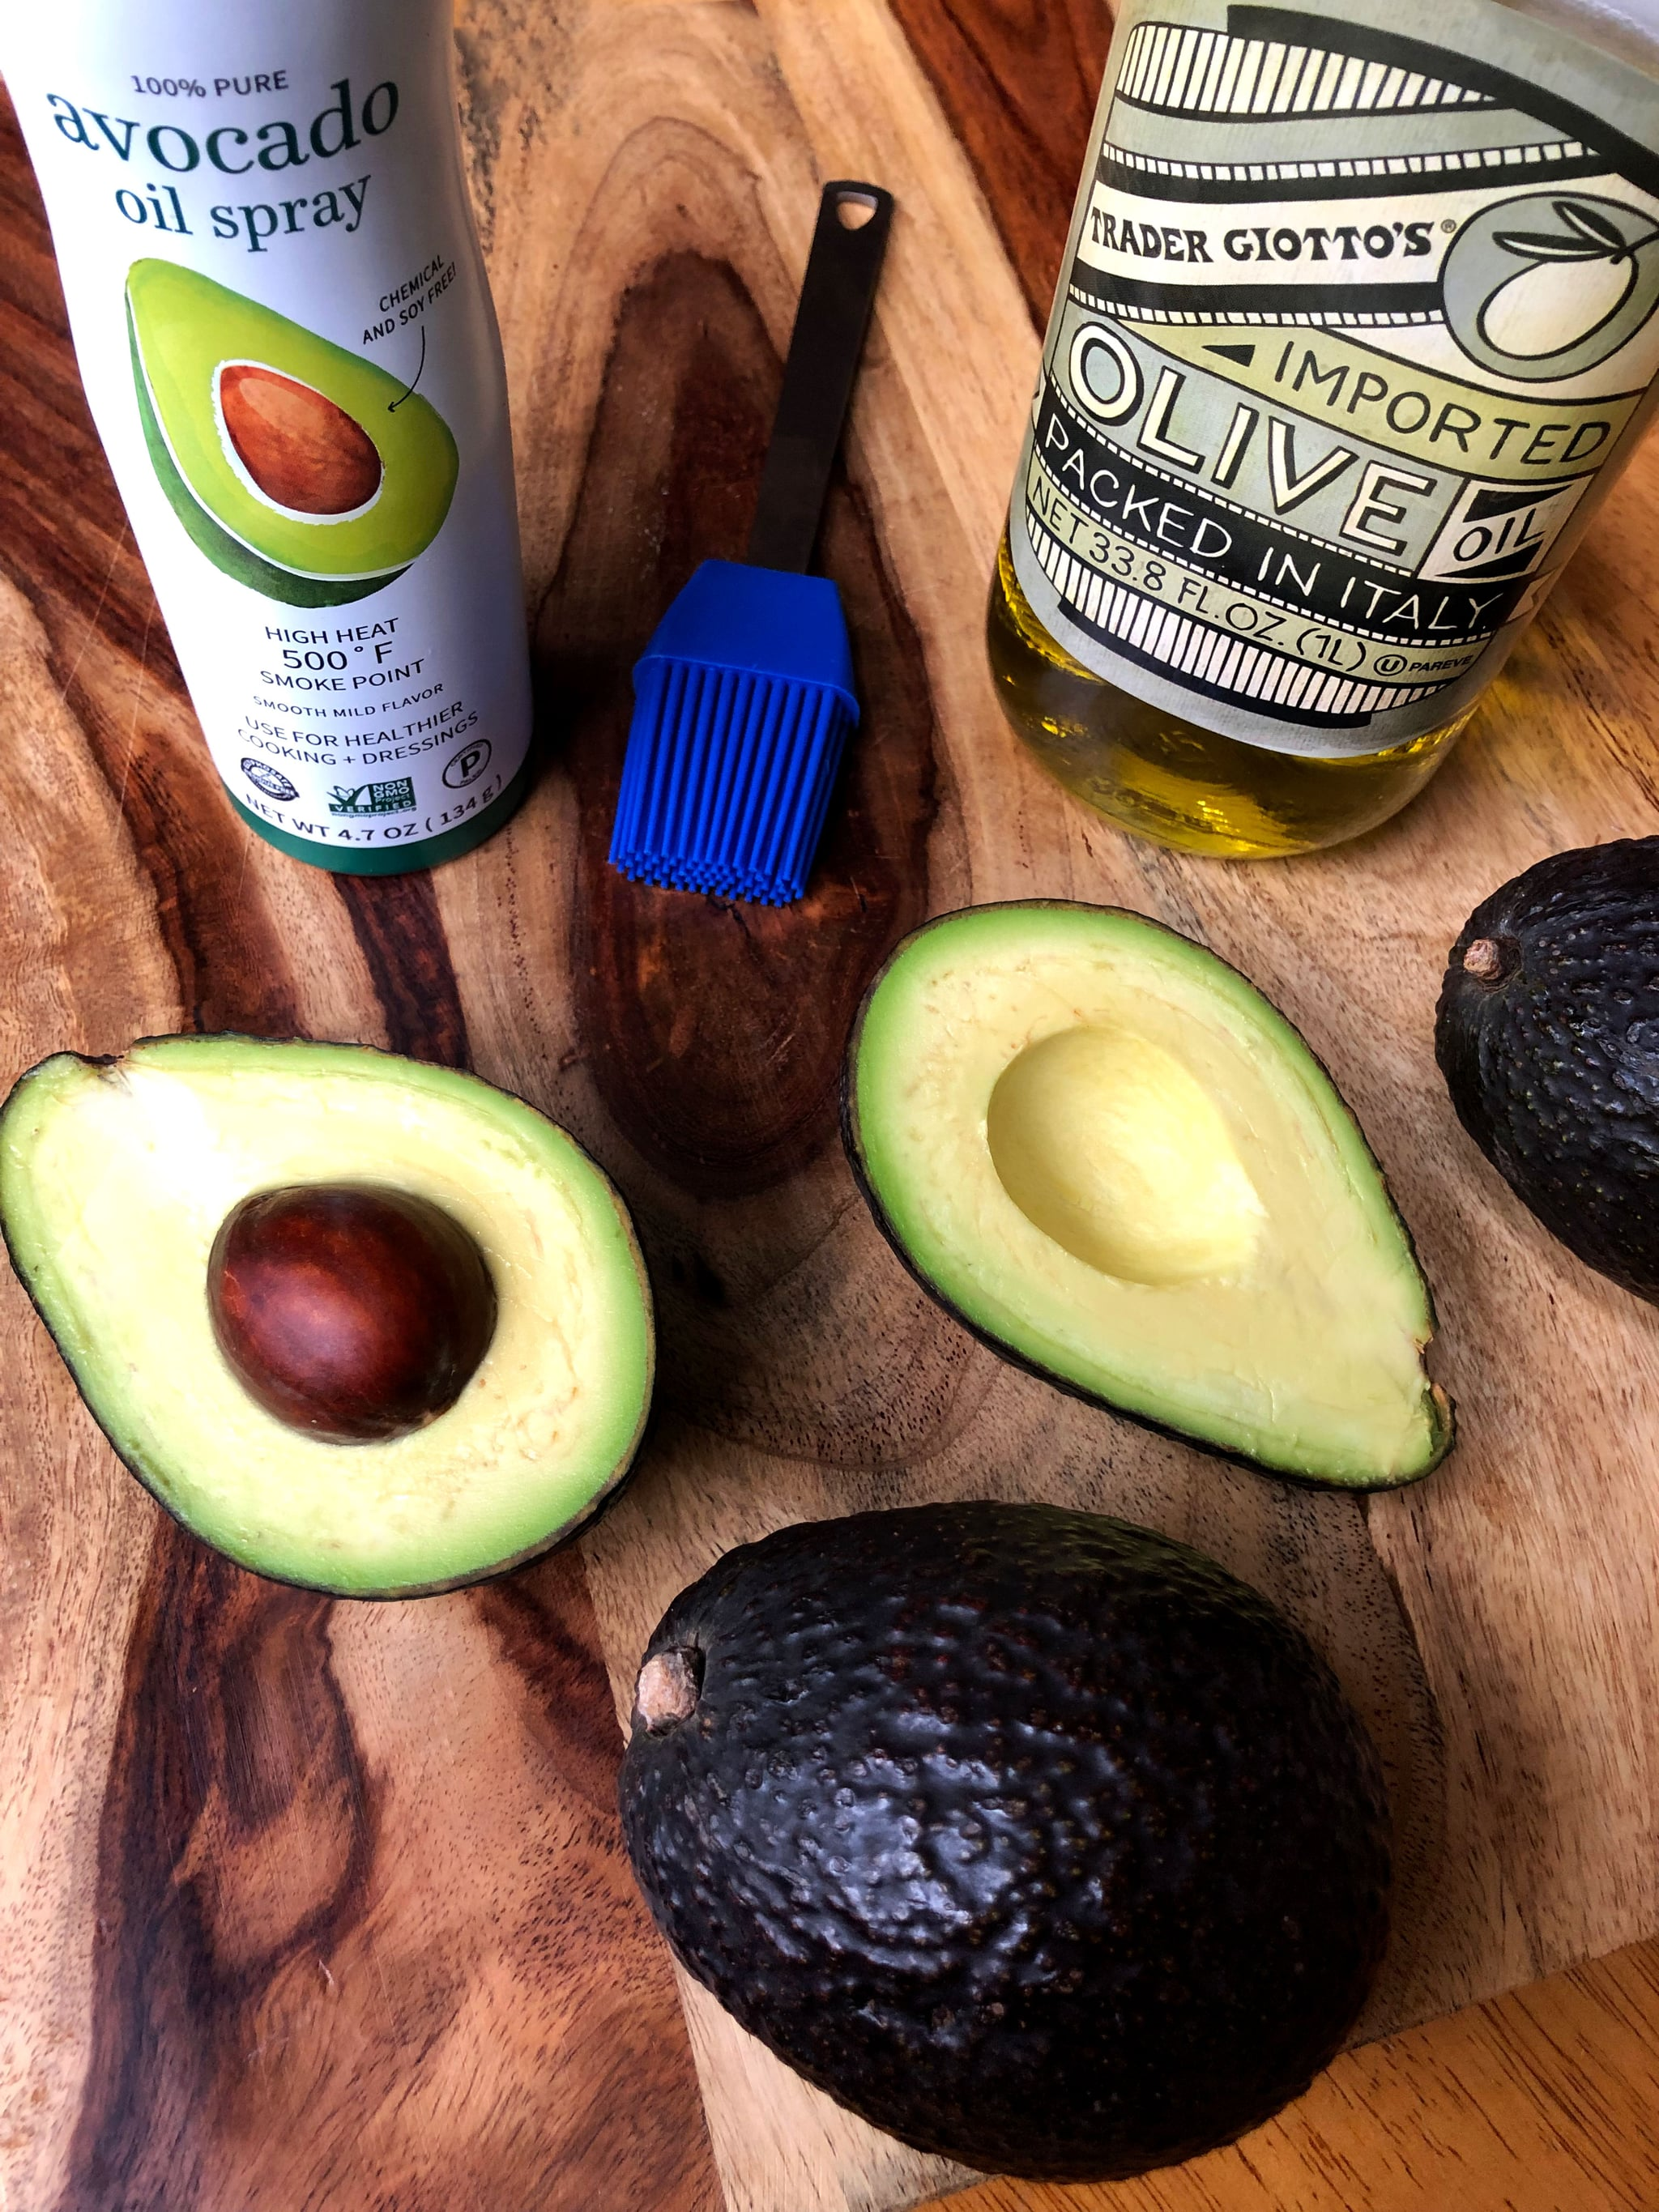 Use This Genius Hack to Store Half of Your Avocado in the Fridge Without It Turning Brown